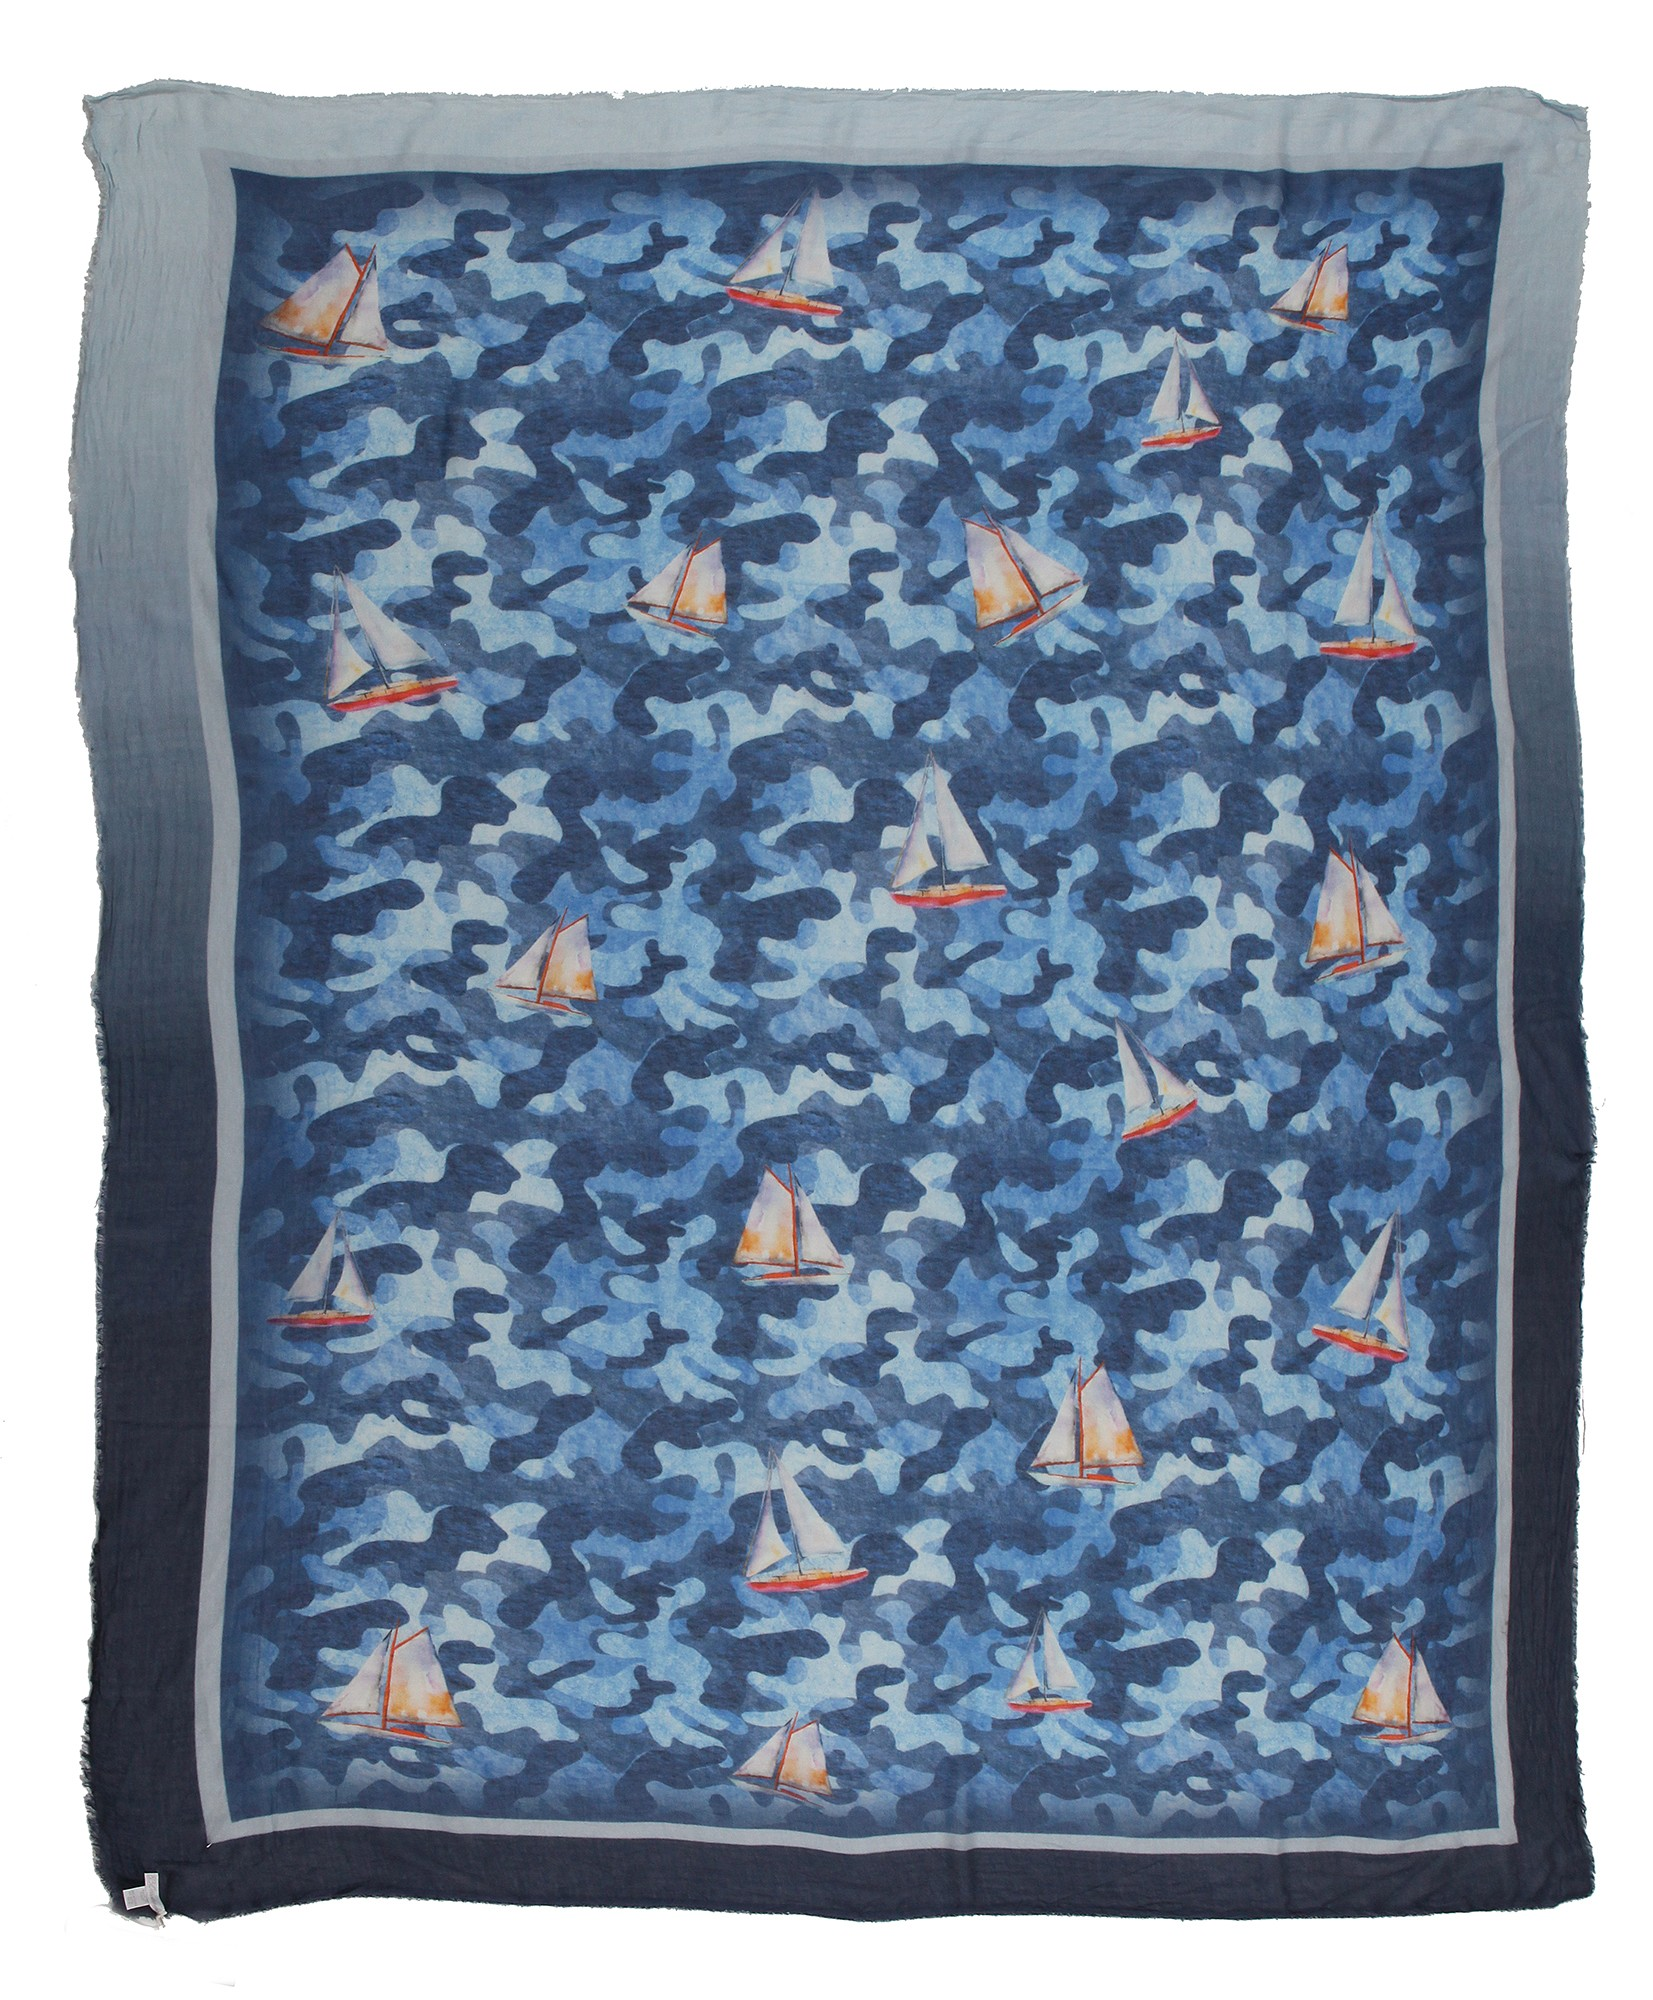 fb301e7f2101e 813 - Annalisa Giuntini - Silk Scarf with Boats in Camouflage Blue - Scarves  and Foulard - Scarf of High Quality Luxury - Avvenice